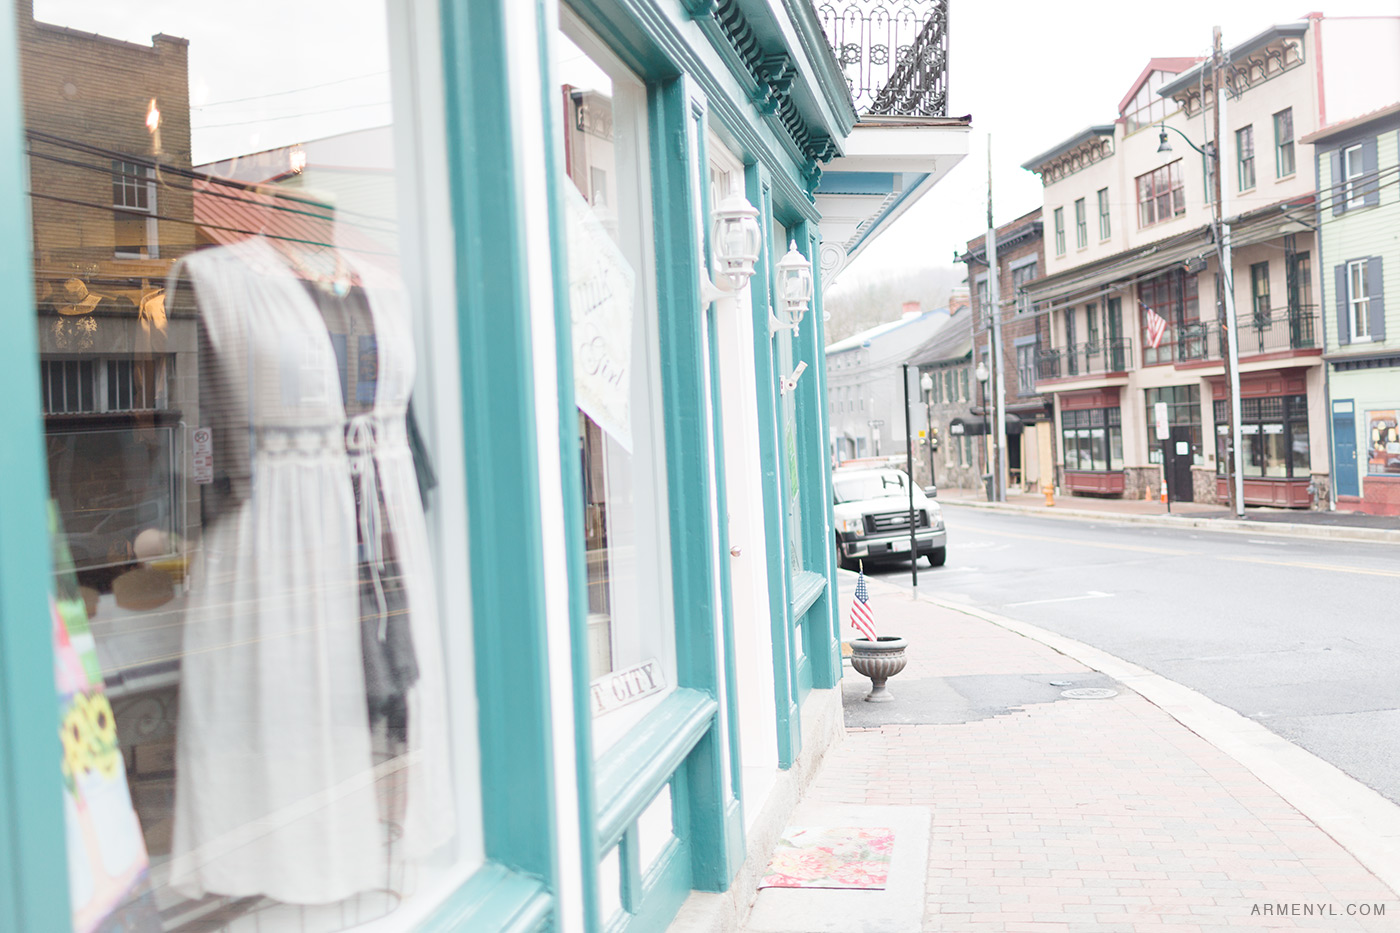 Pretty Pastels in Ellicott City Maryland Charm | Armenyl.com